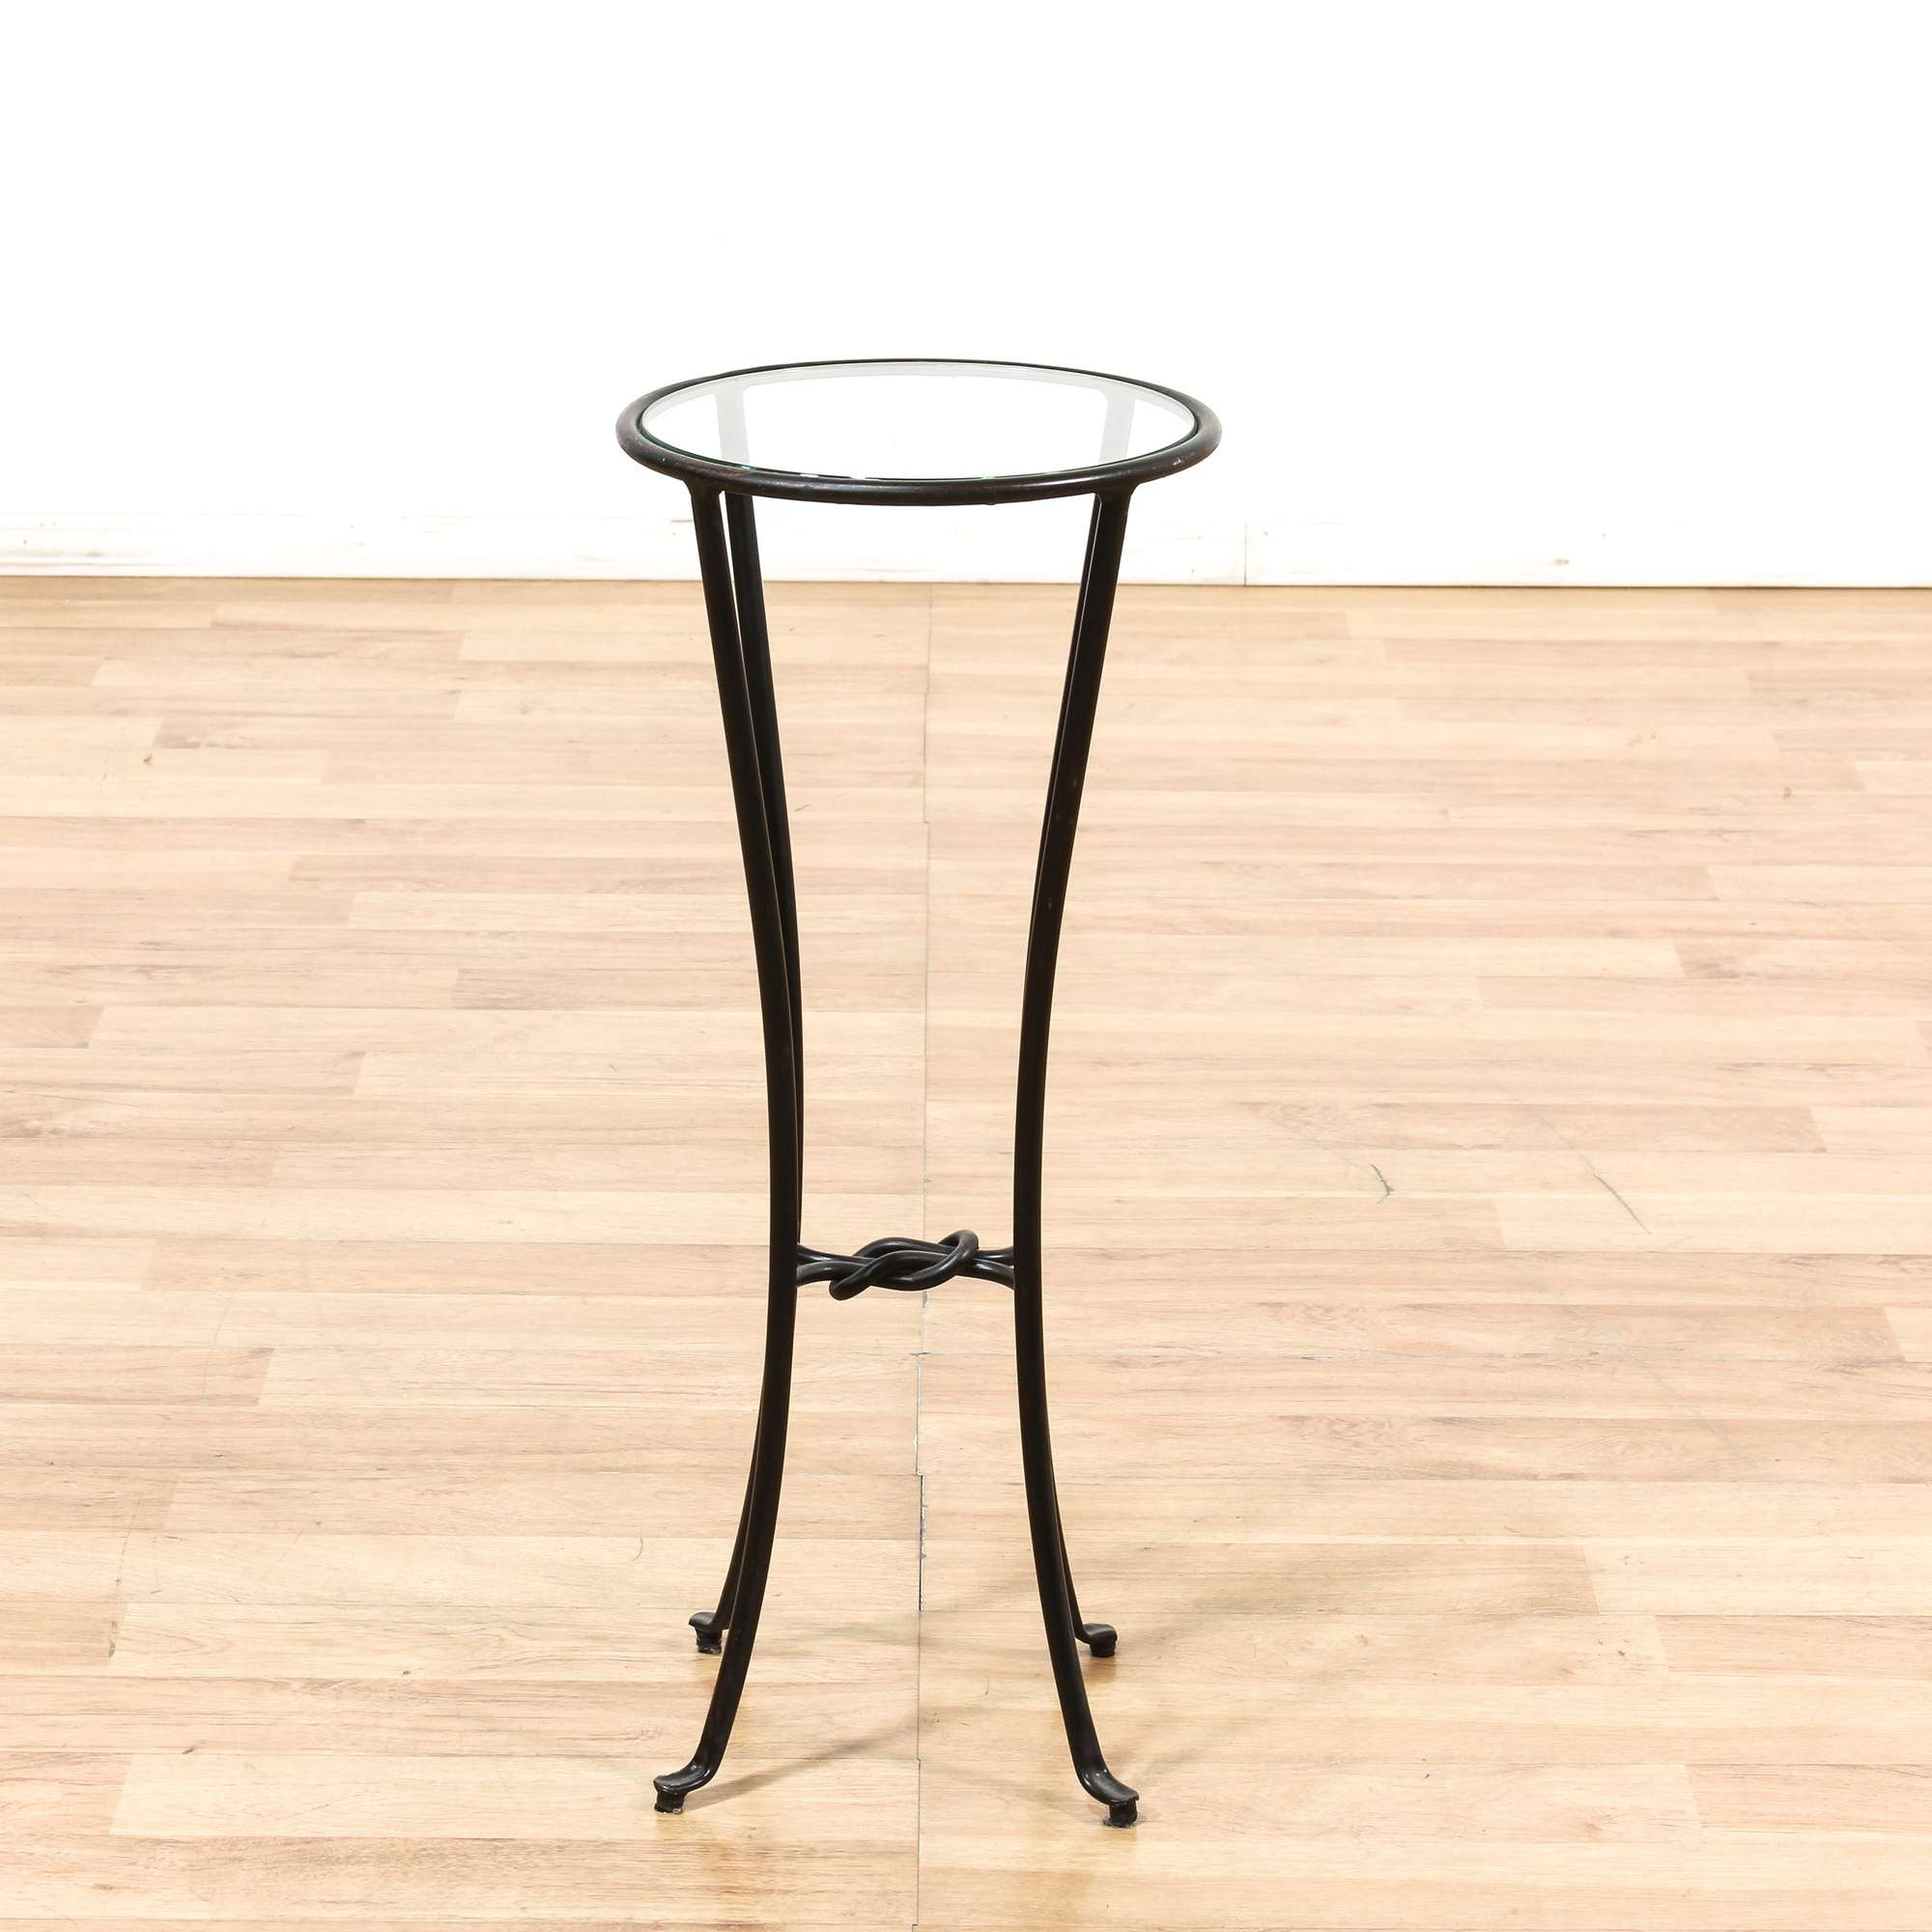 fresh glass plant stand design indoor table top pedestal shelf round accent loveseat vintage furniture angele mosaic leaf small metal coffee shoe organizer target end tables ikea